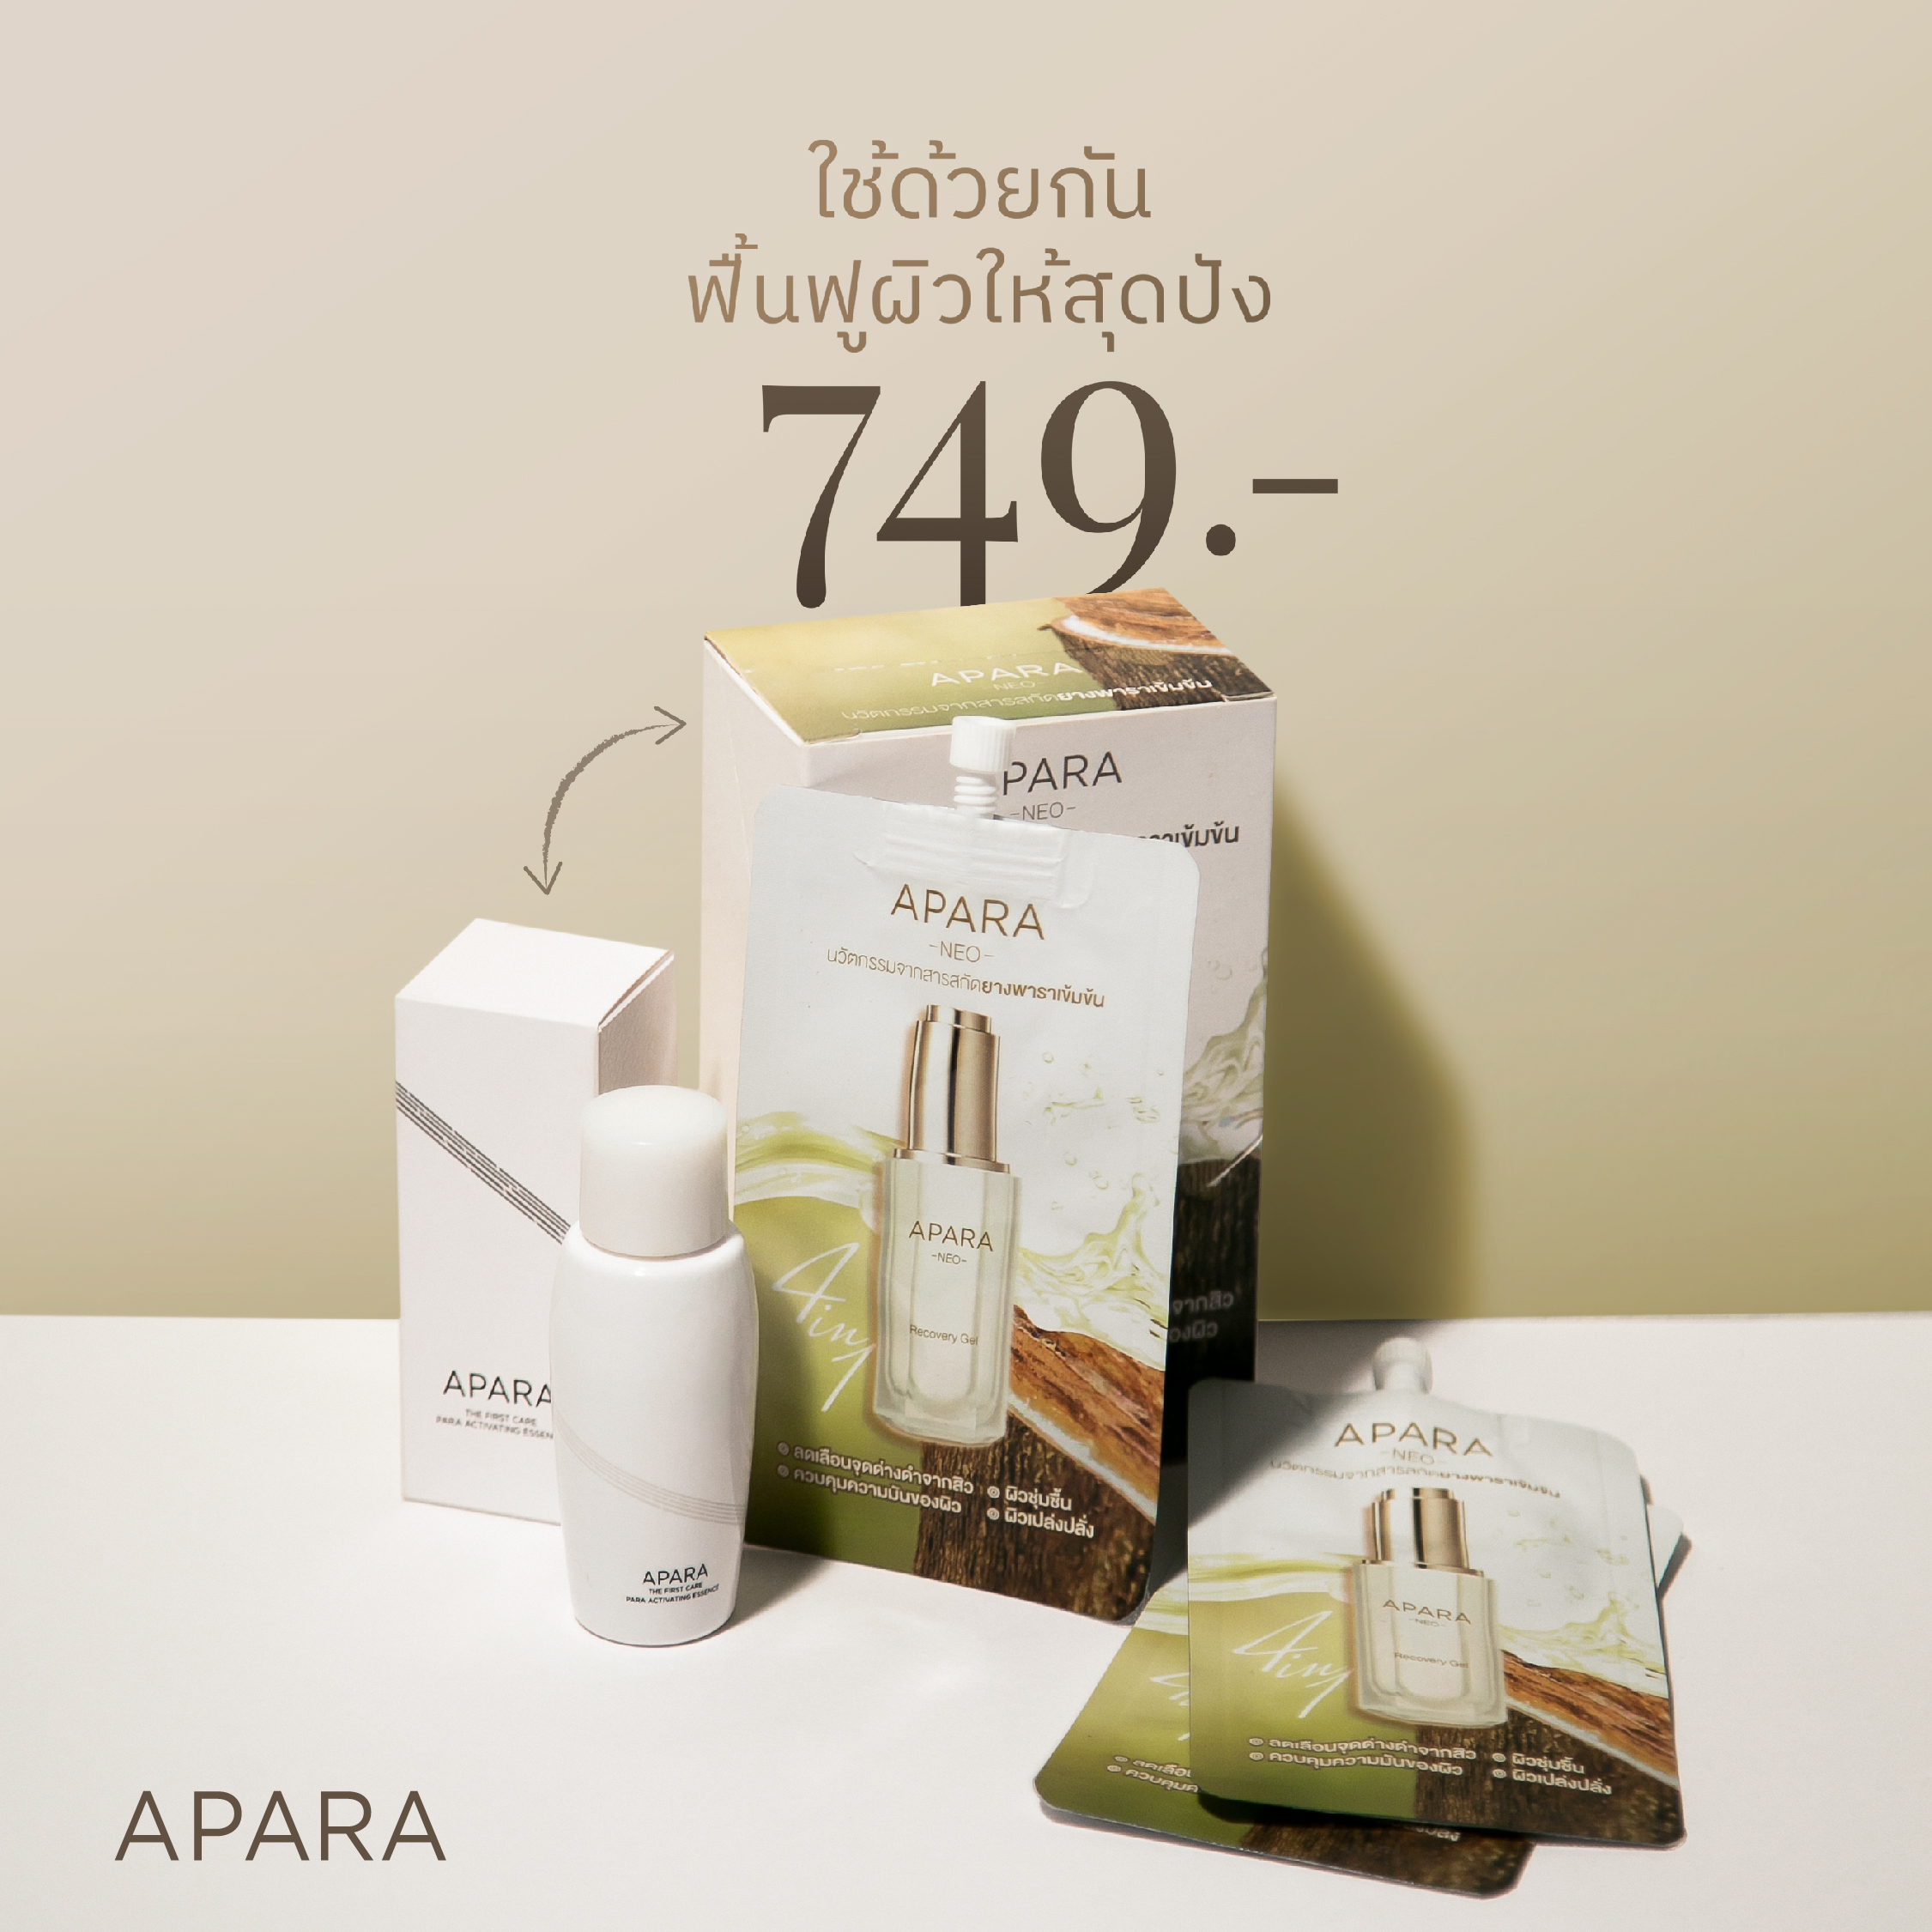 APARA  ESSENCE 30 ml. + Recovery Gel 1 กล่อง